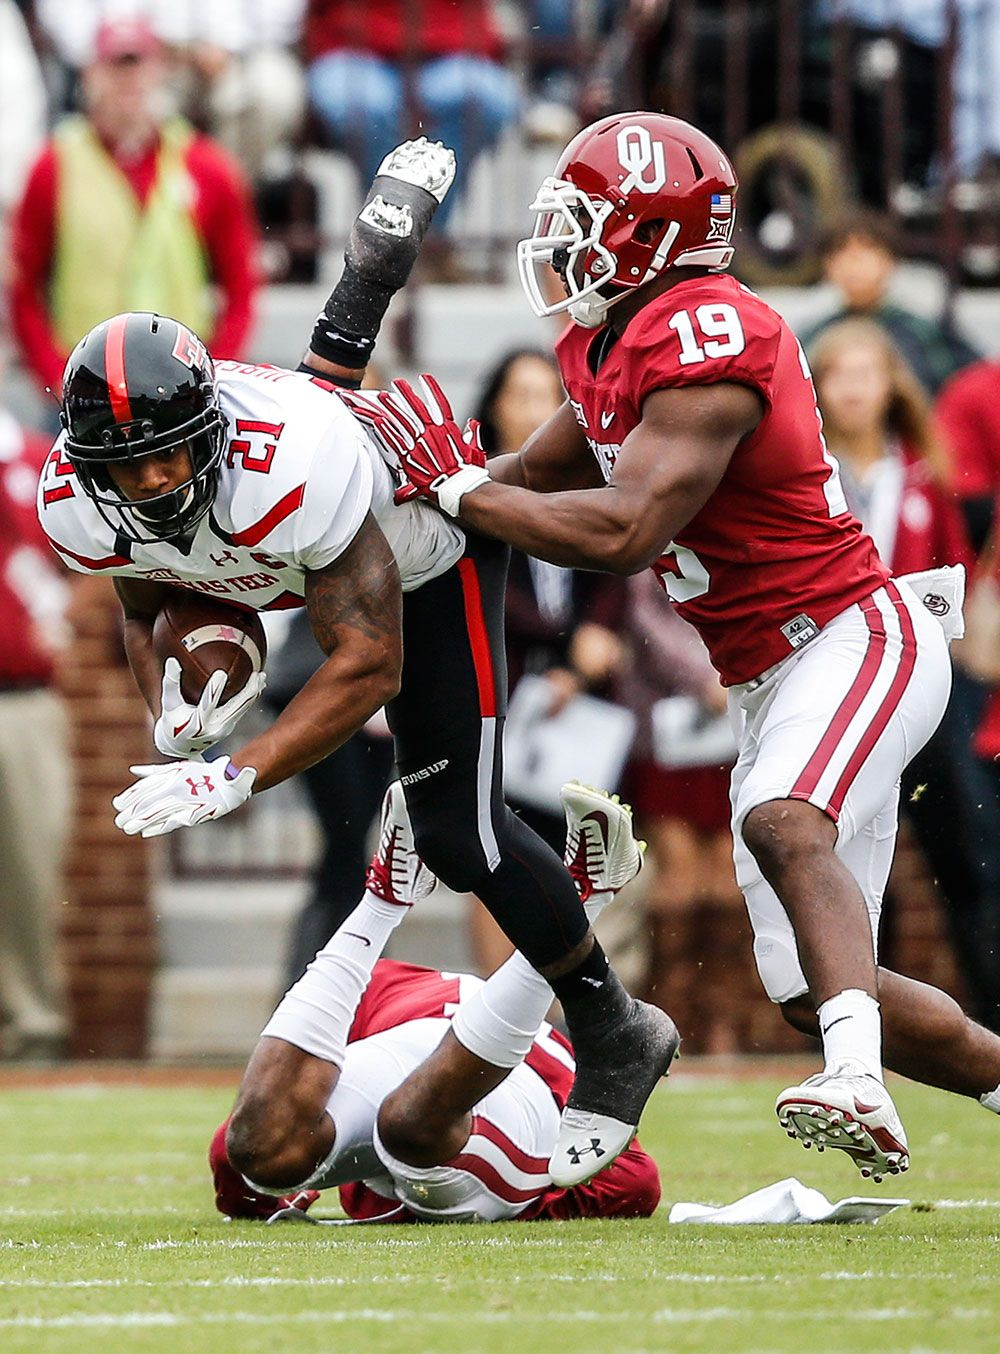 College football photos Best images from Week 8 games